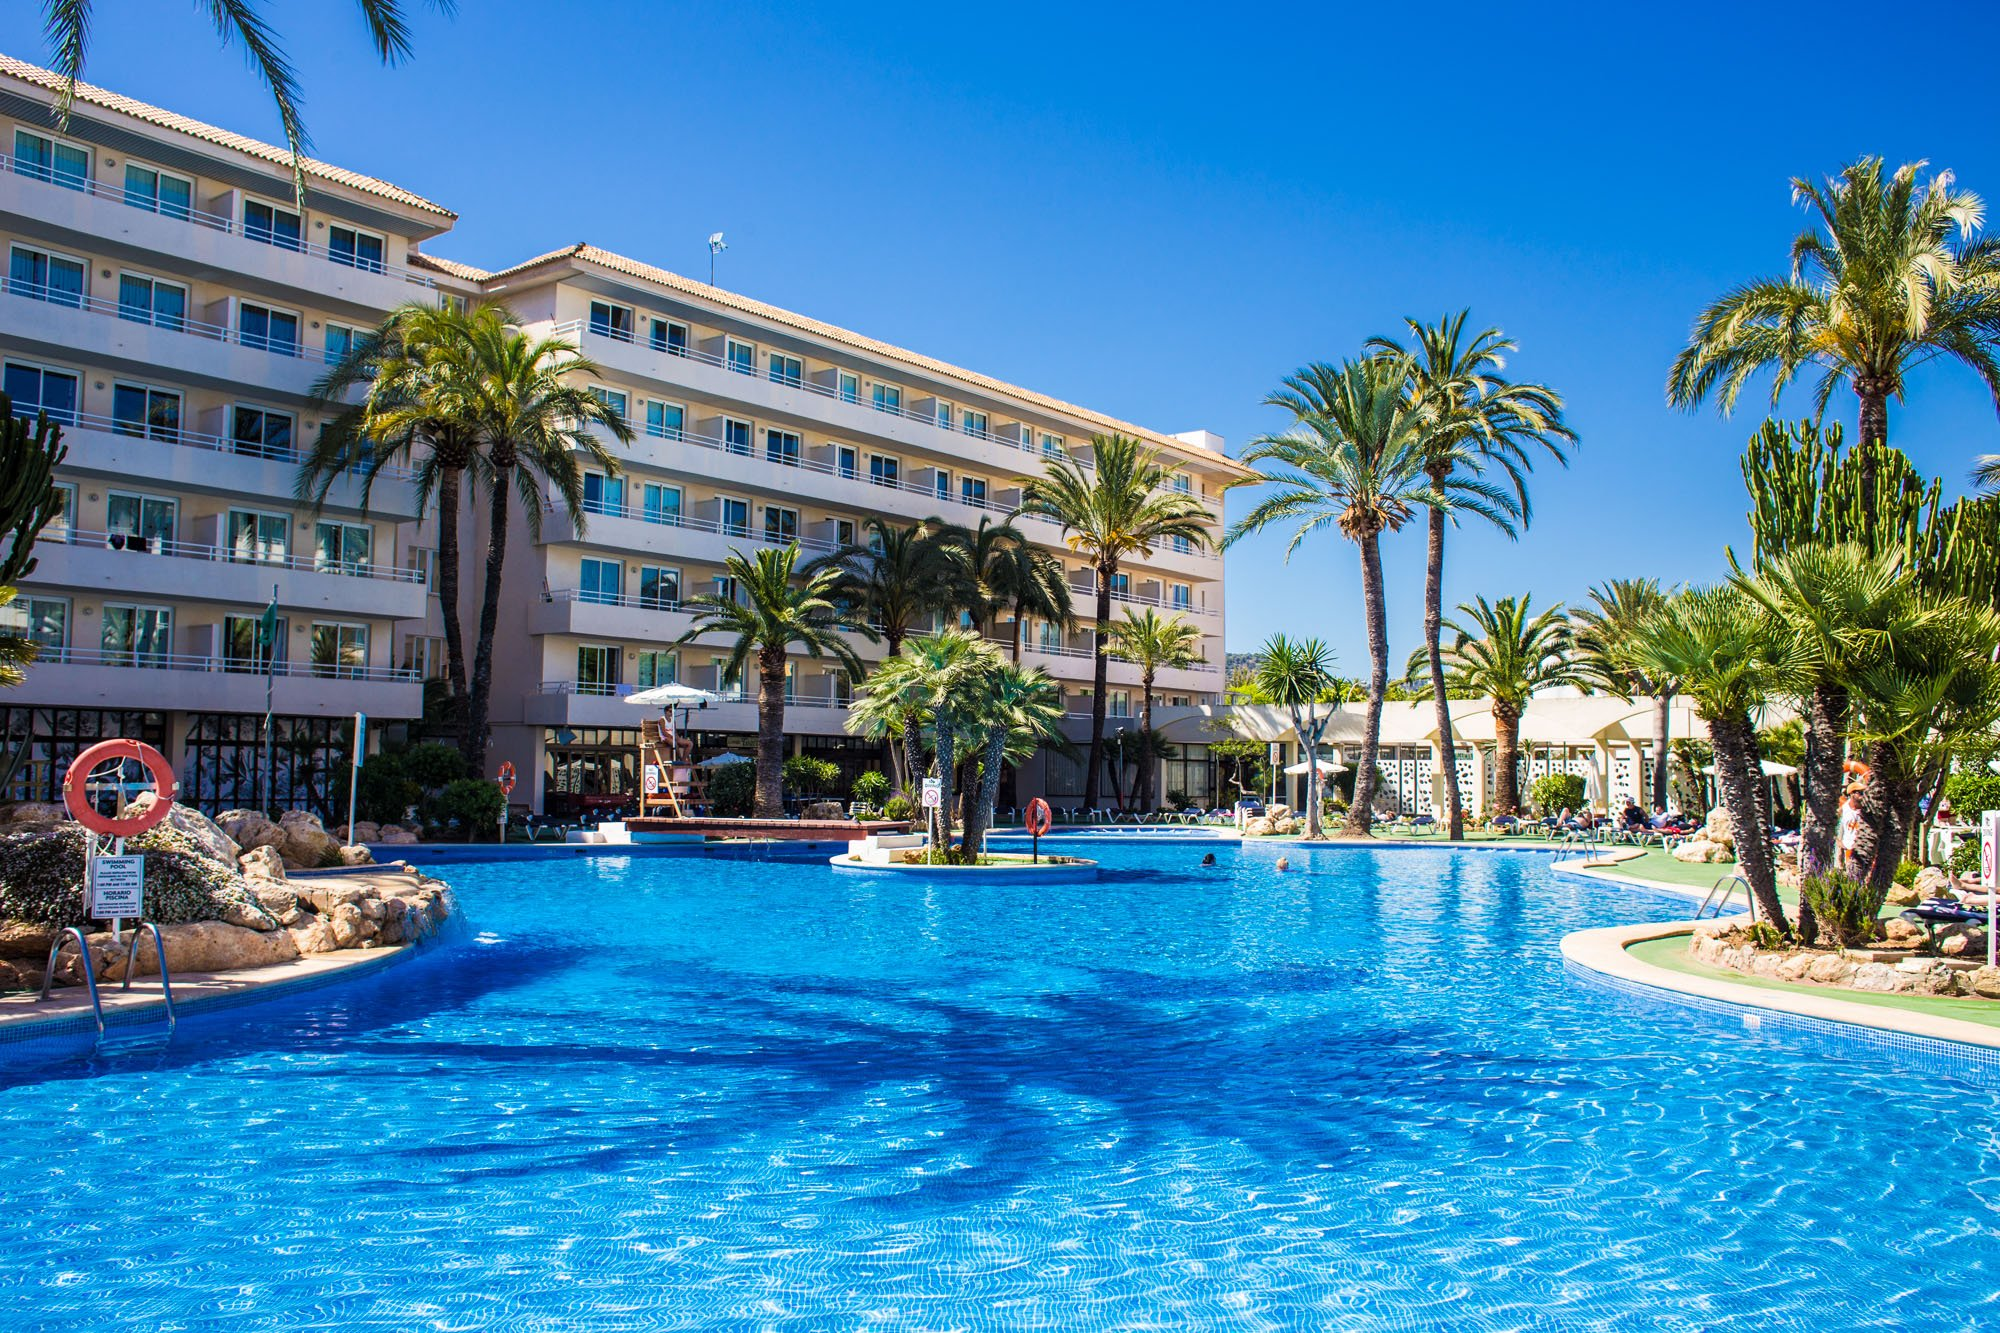 Bcm Hotel Photos Official Website Images Of The Best Party Hotel In Magaluf